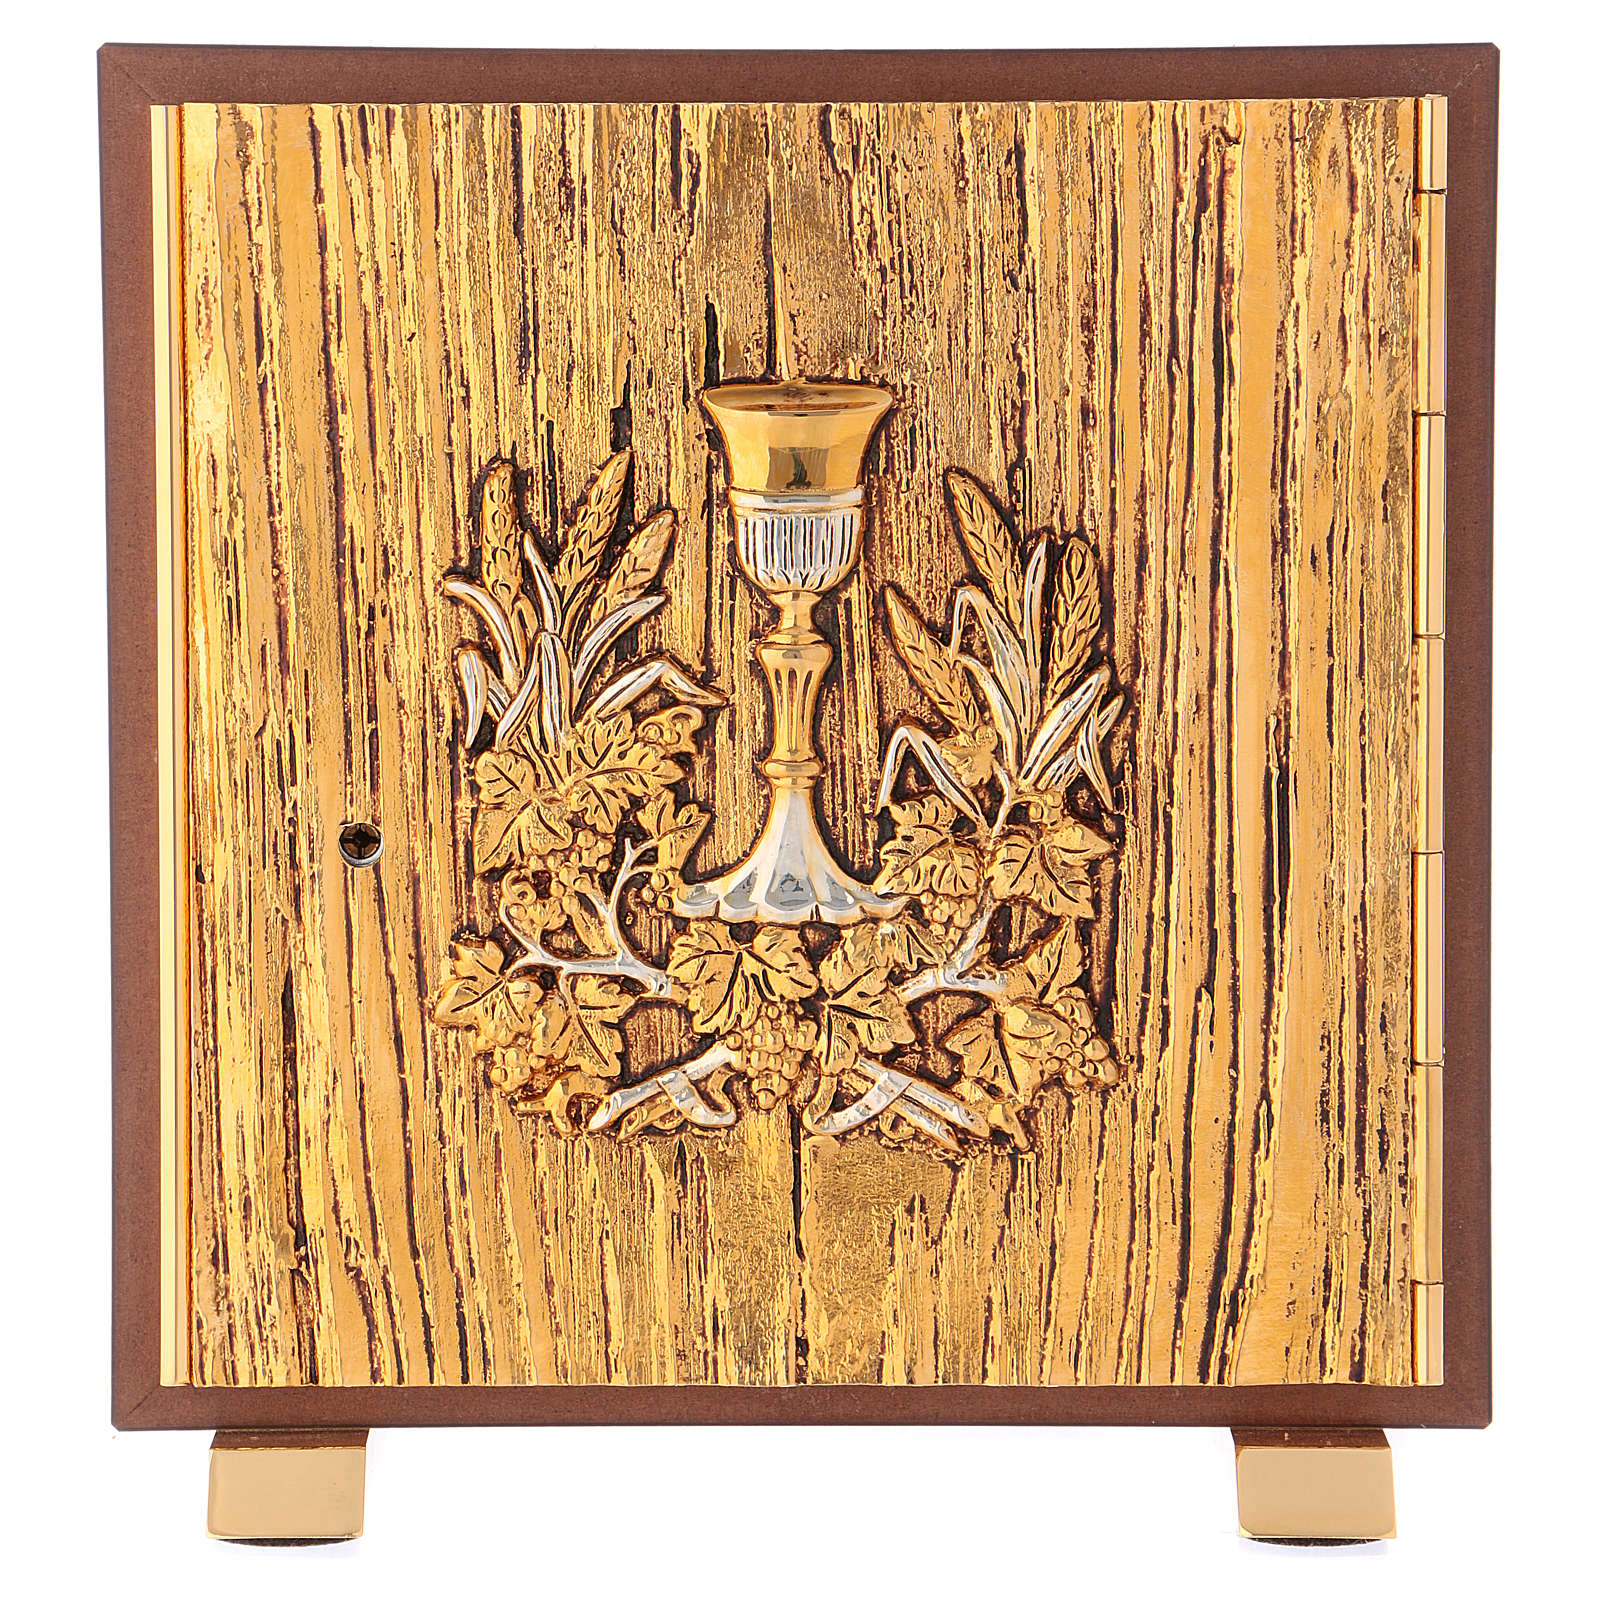 Tabernacle Calice bois finition ronce d'orme 4